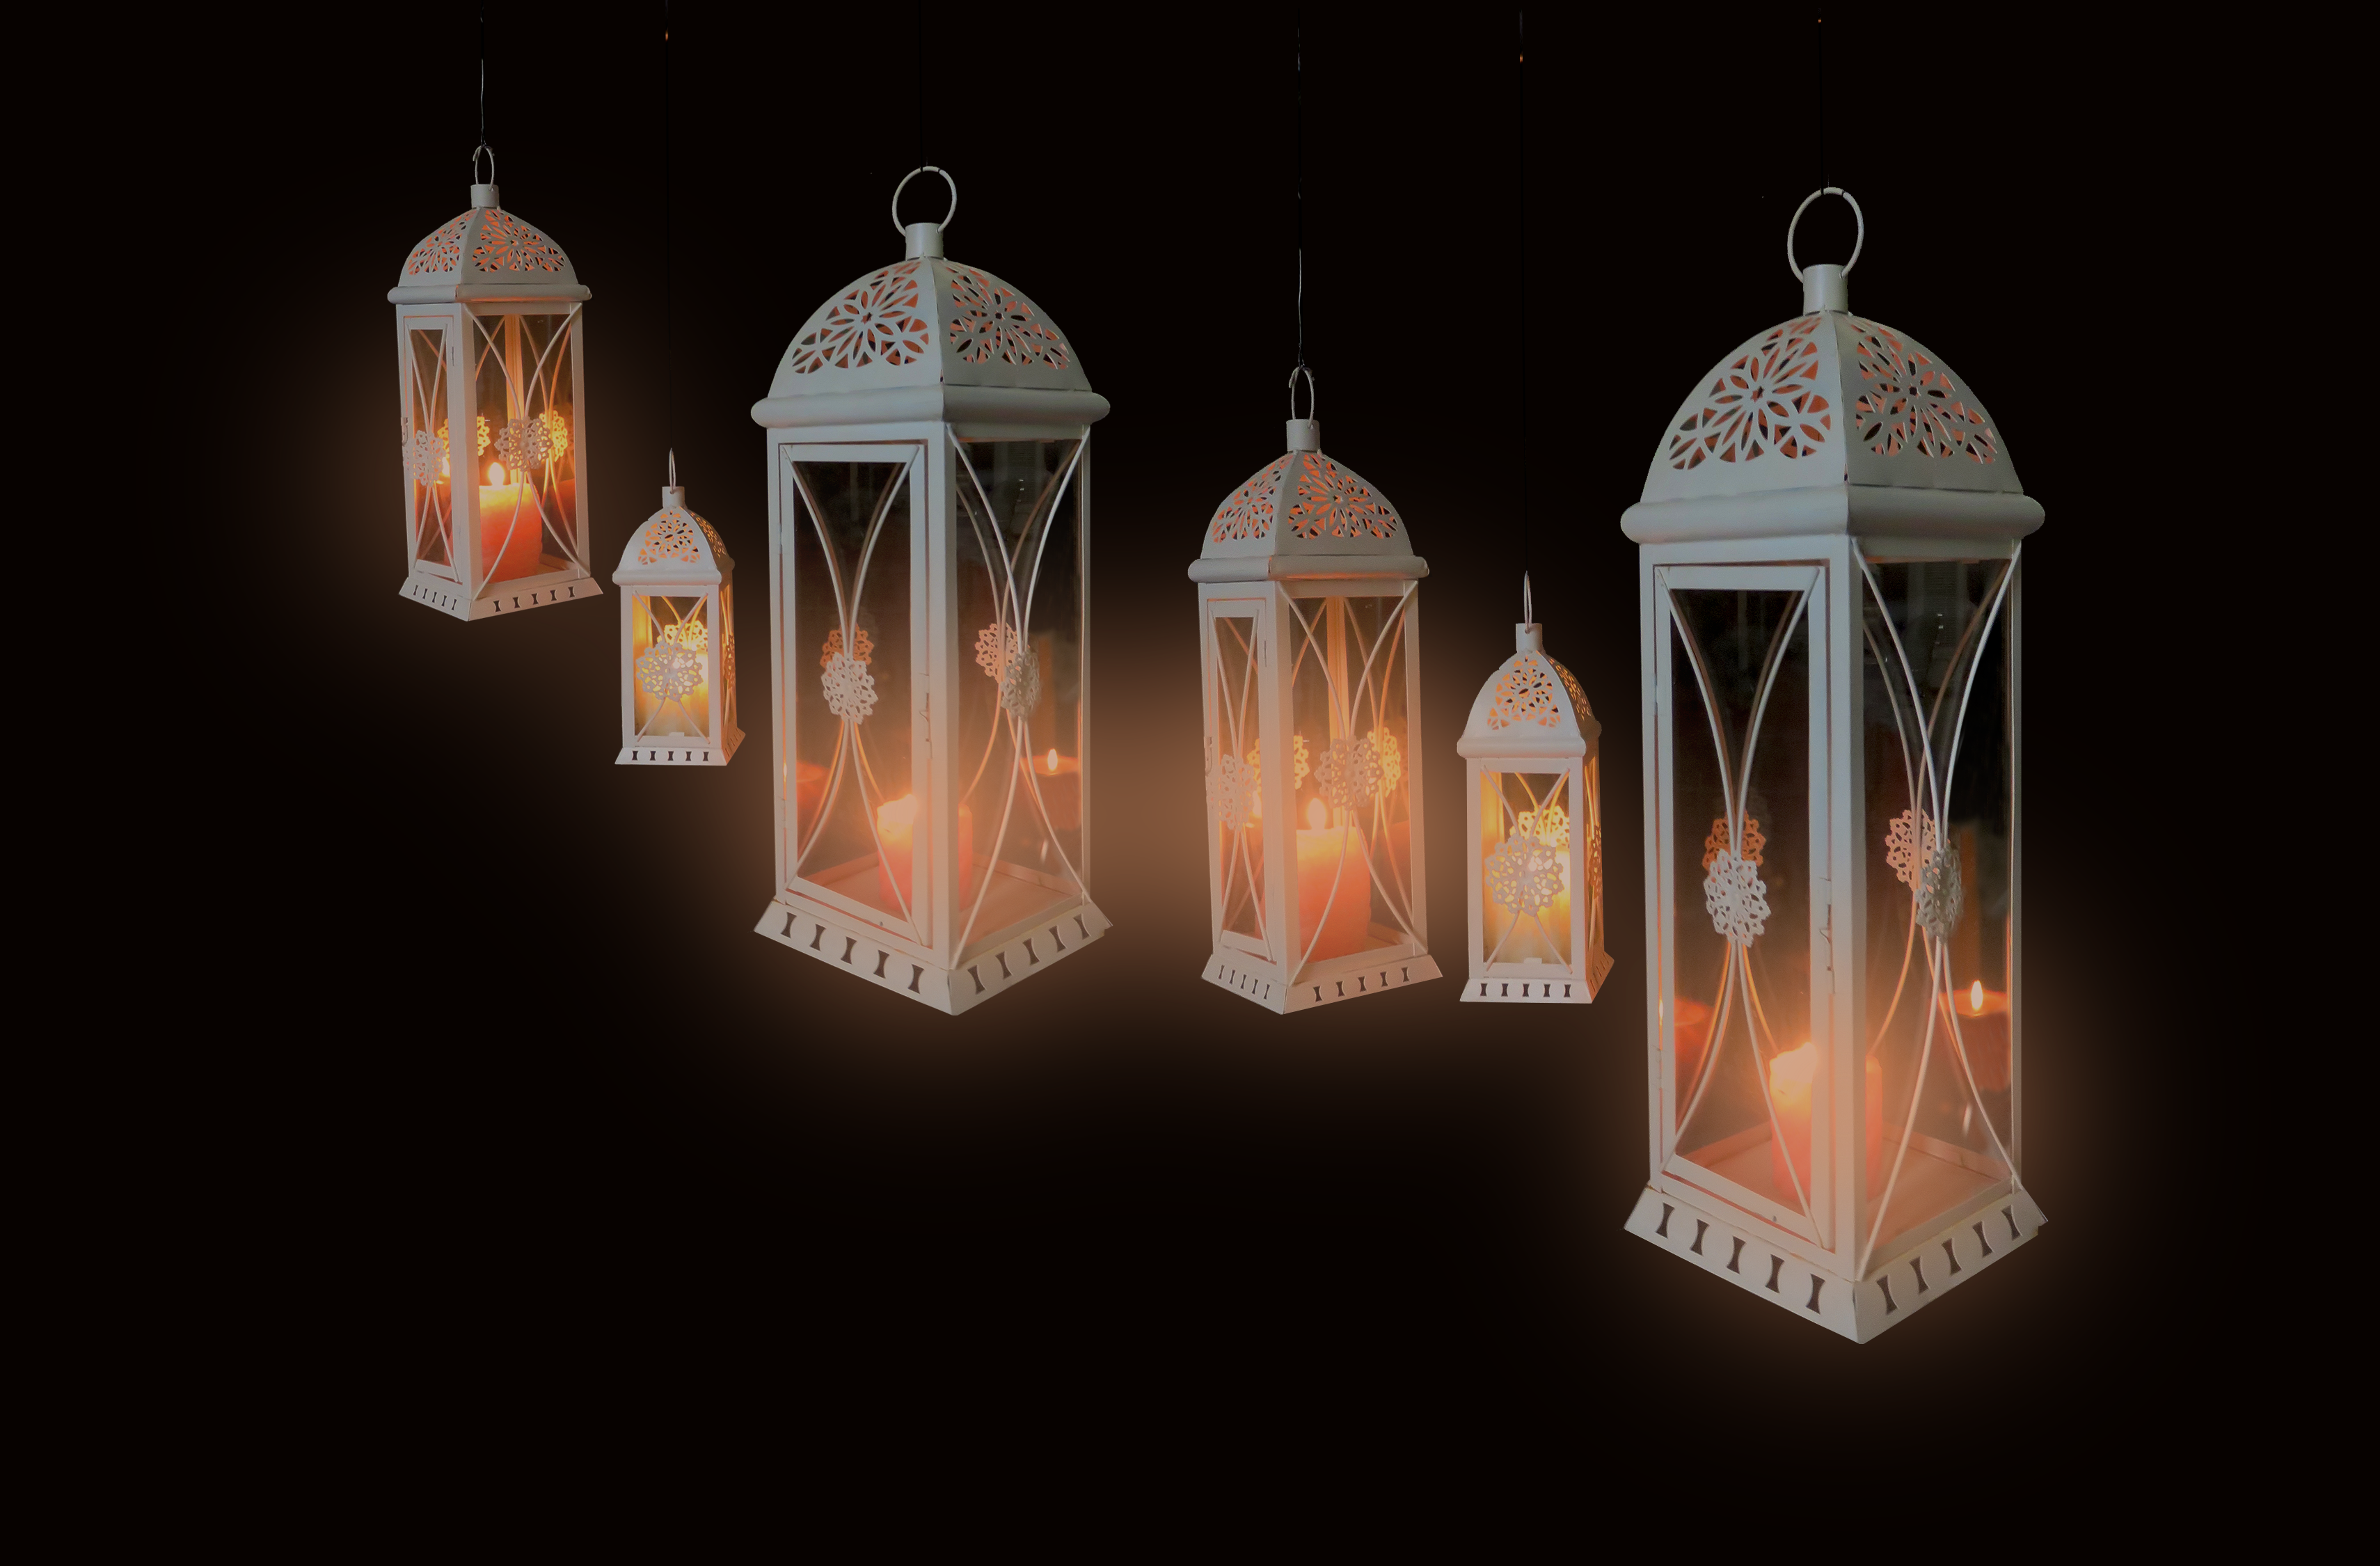 kareem eps and stock arabic with for ramadan other vector image intricate events lamp photo lights